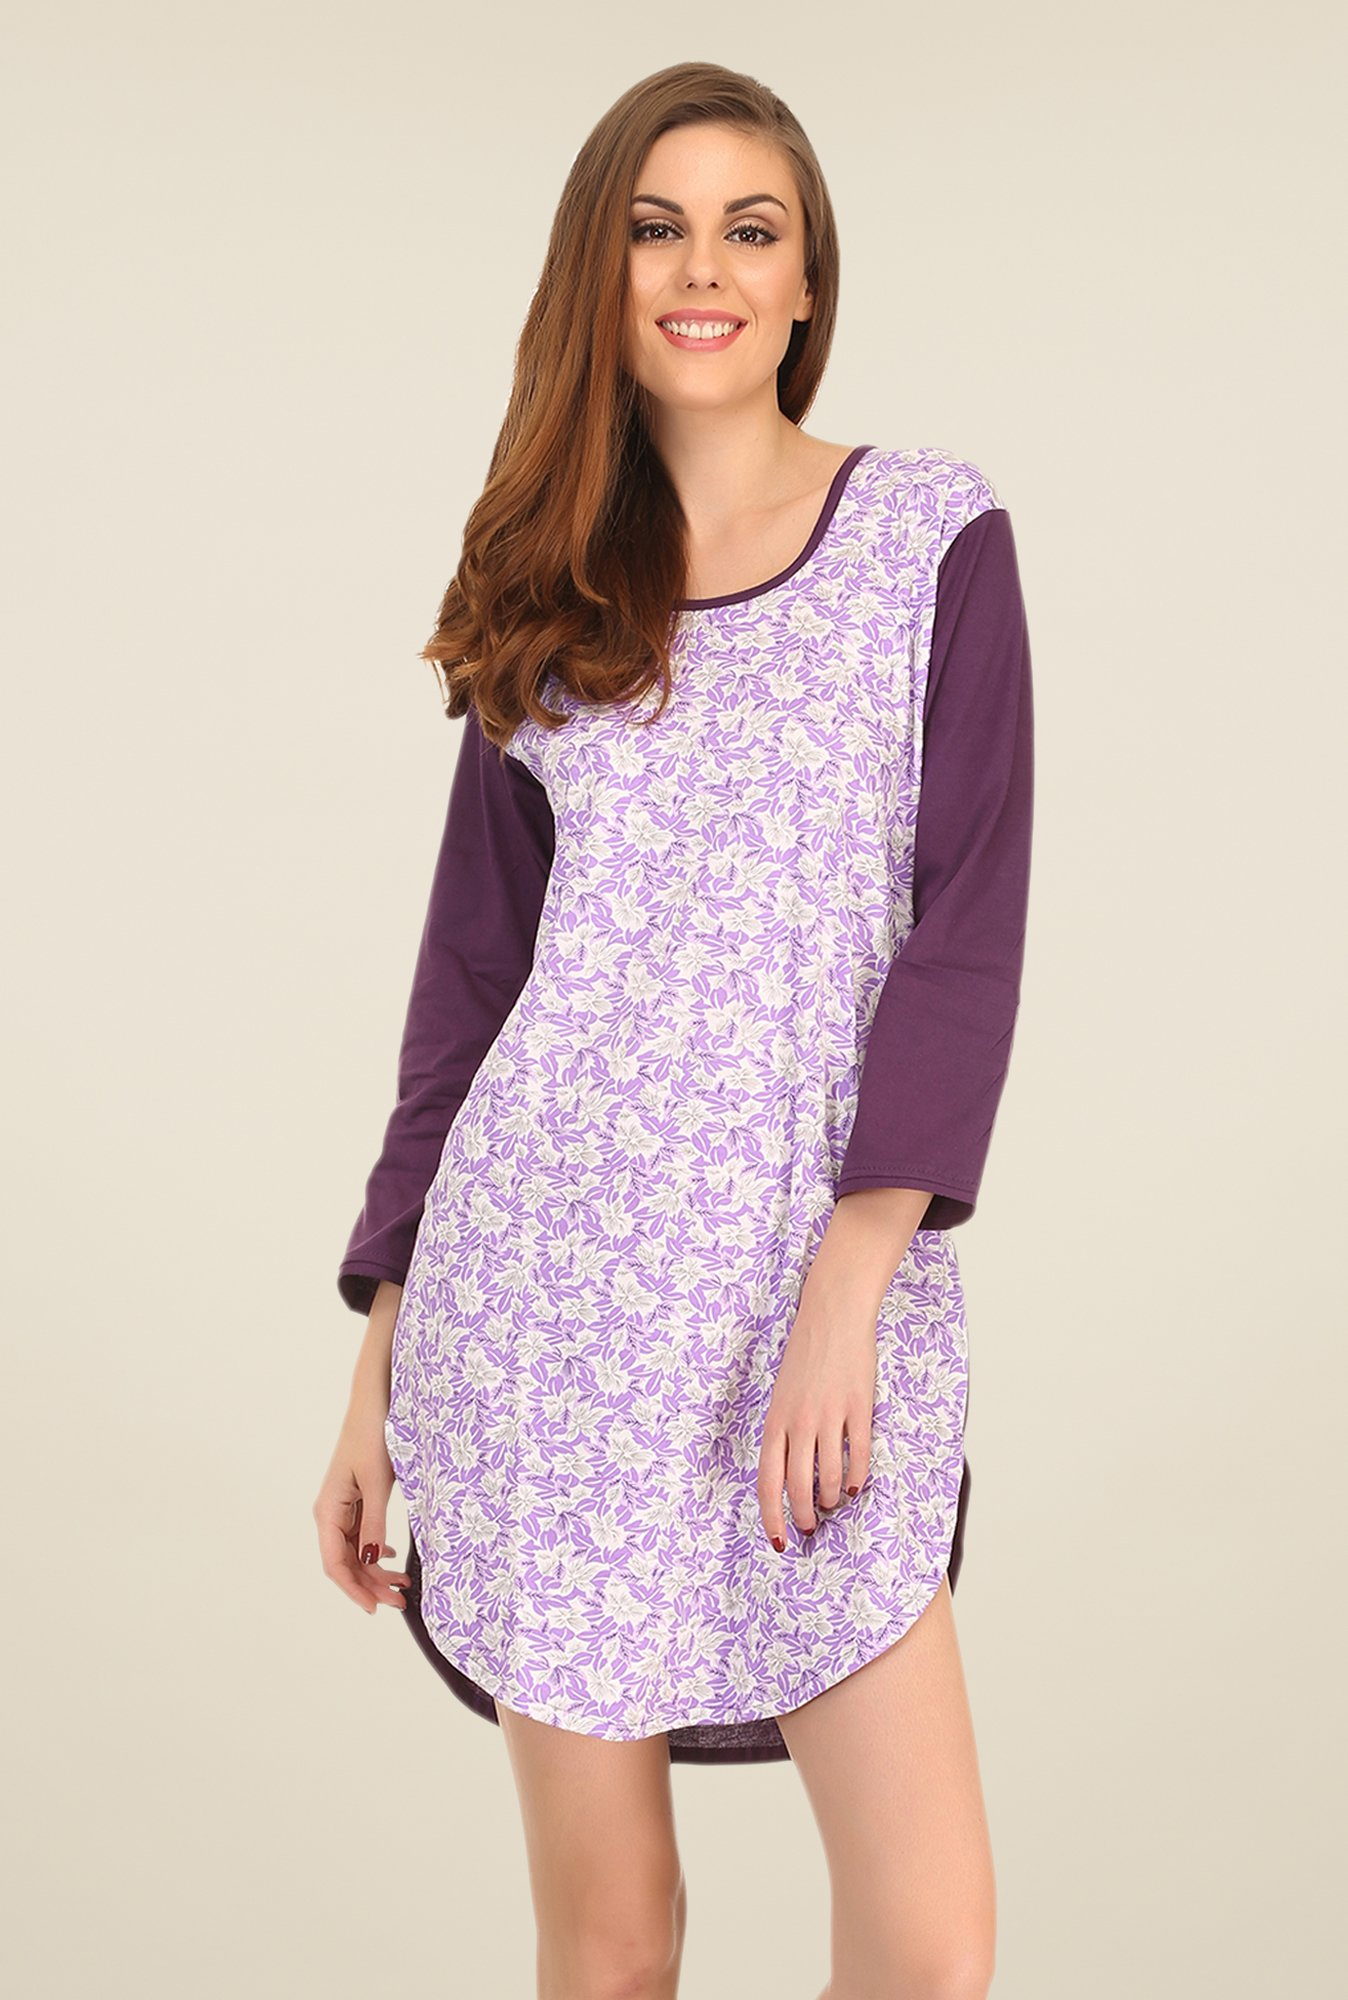 Clovia Purple & White Floral Print Nightdress